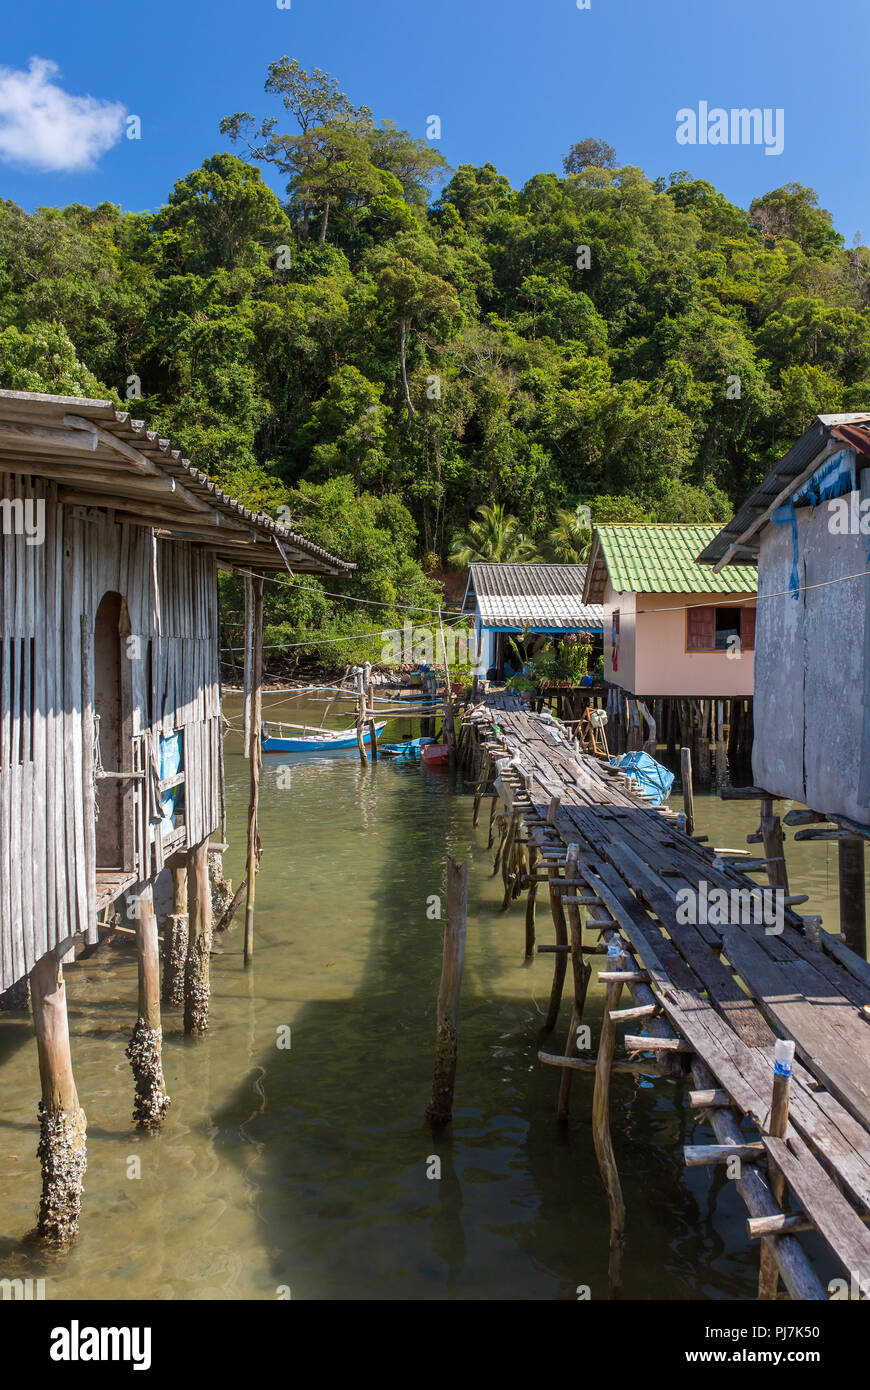 Stilt houses in Baan AoYai Salad port and fishing village on Koh Kood Island, Thailand - Stock Image